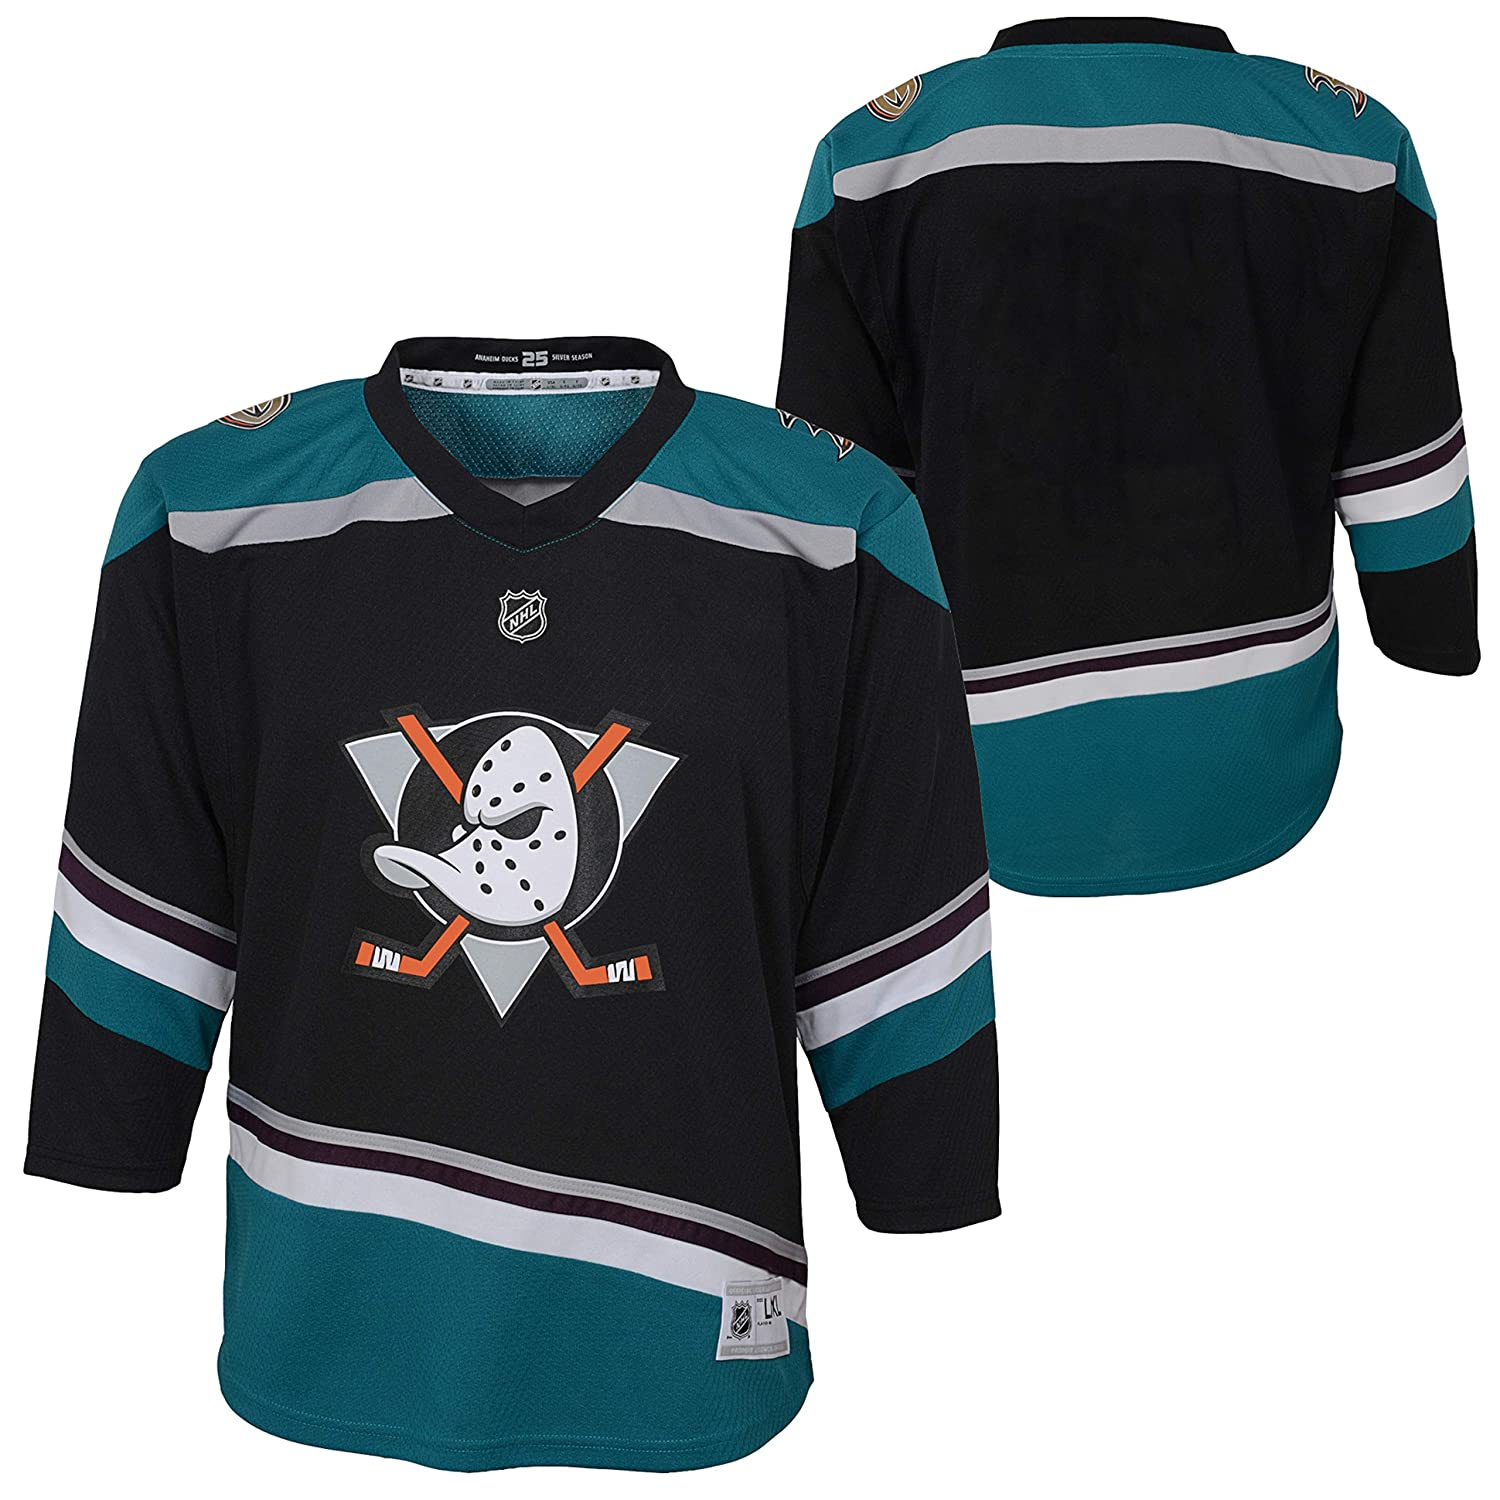 competitive price fda86 f7314 14-20 Jersey Ducks x-large Replica Teal Black com 25th Blank ...